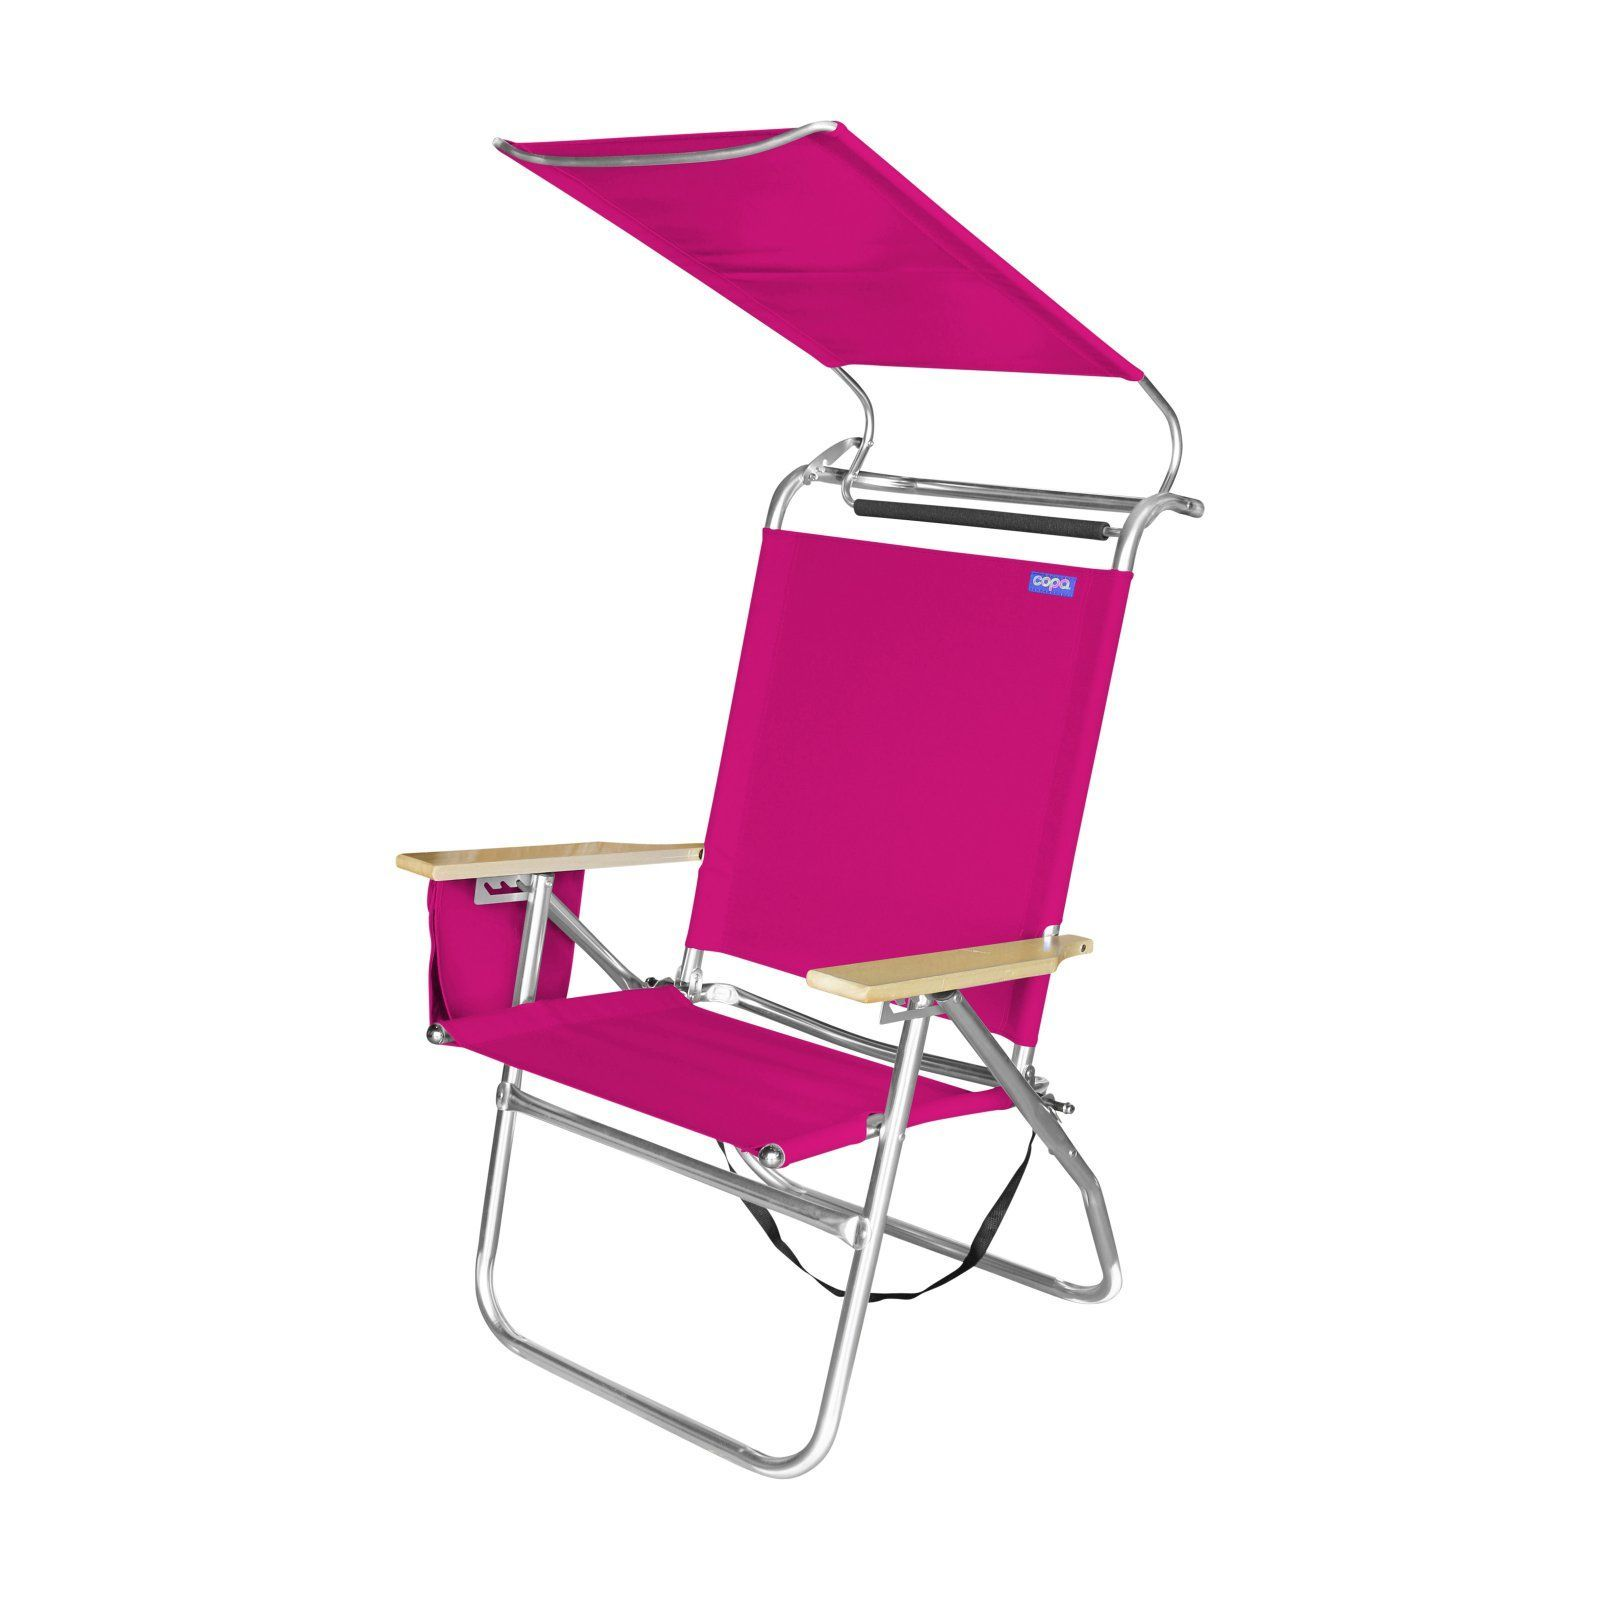 10 Best Beach Chairs 2021 Reviews Of Beach Chairs